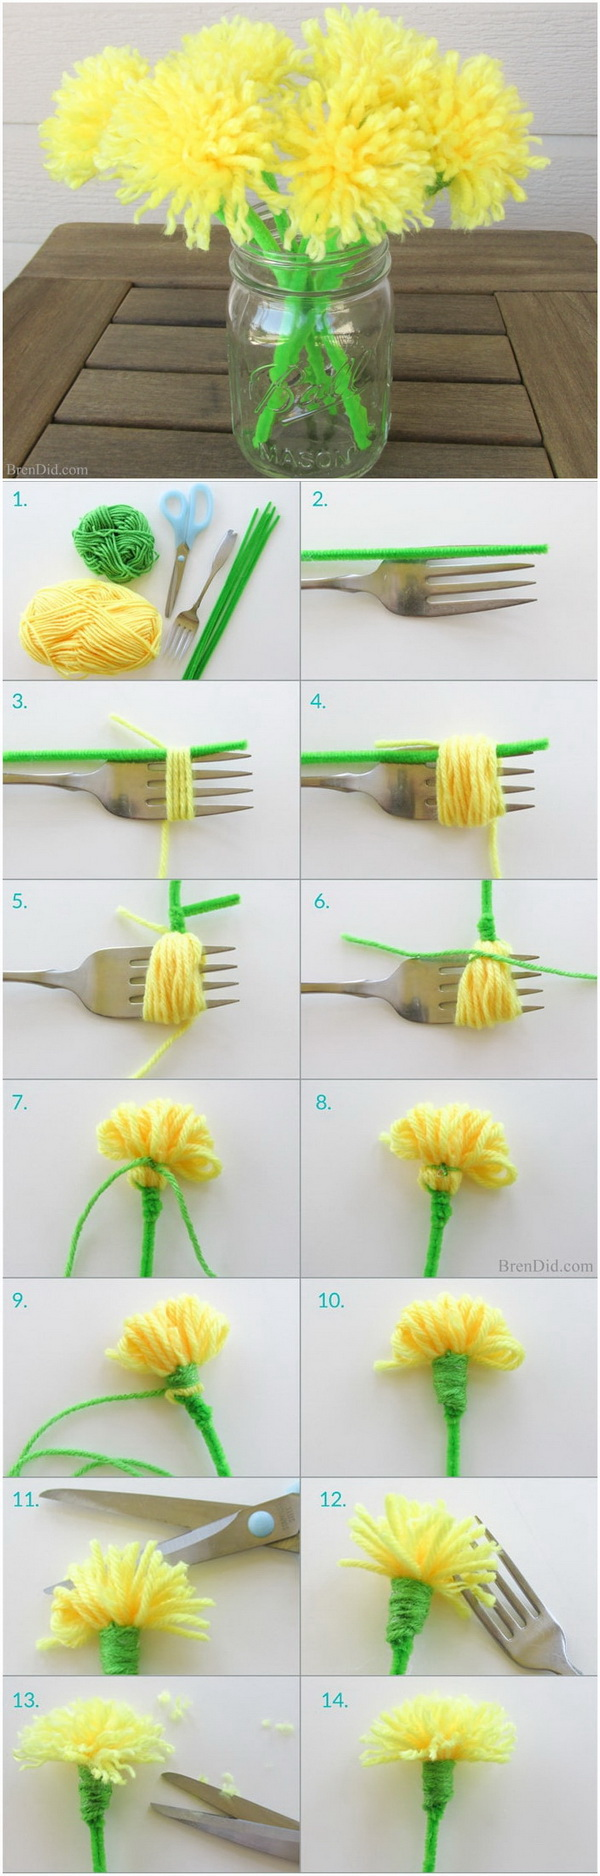 Easy Kids Craft Ideas: DIY Dandelion Tassel Bouquet.